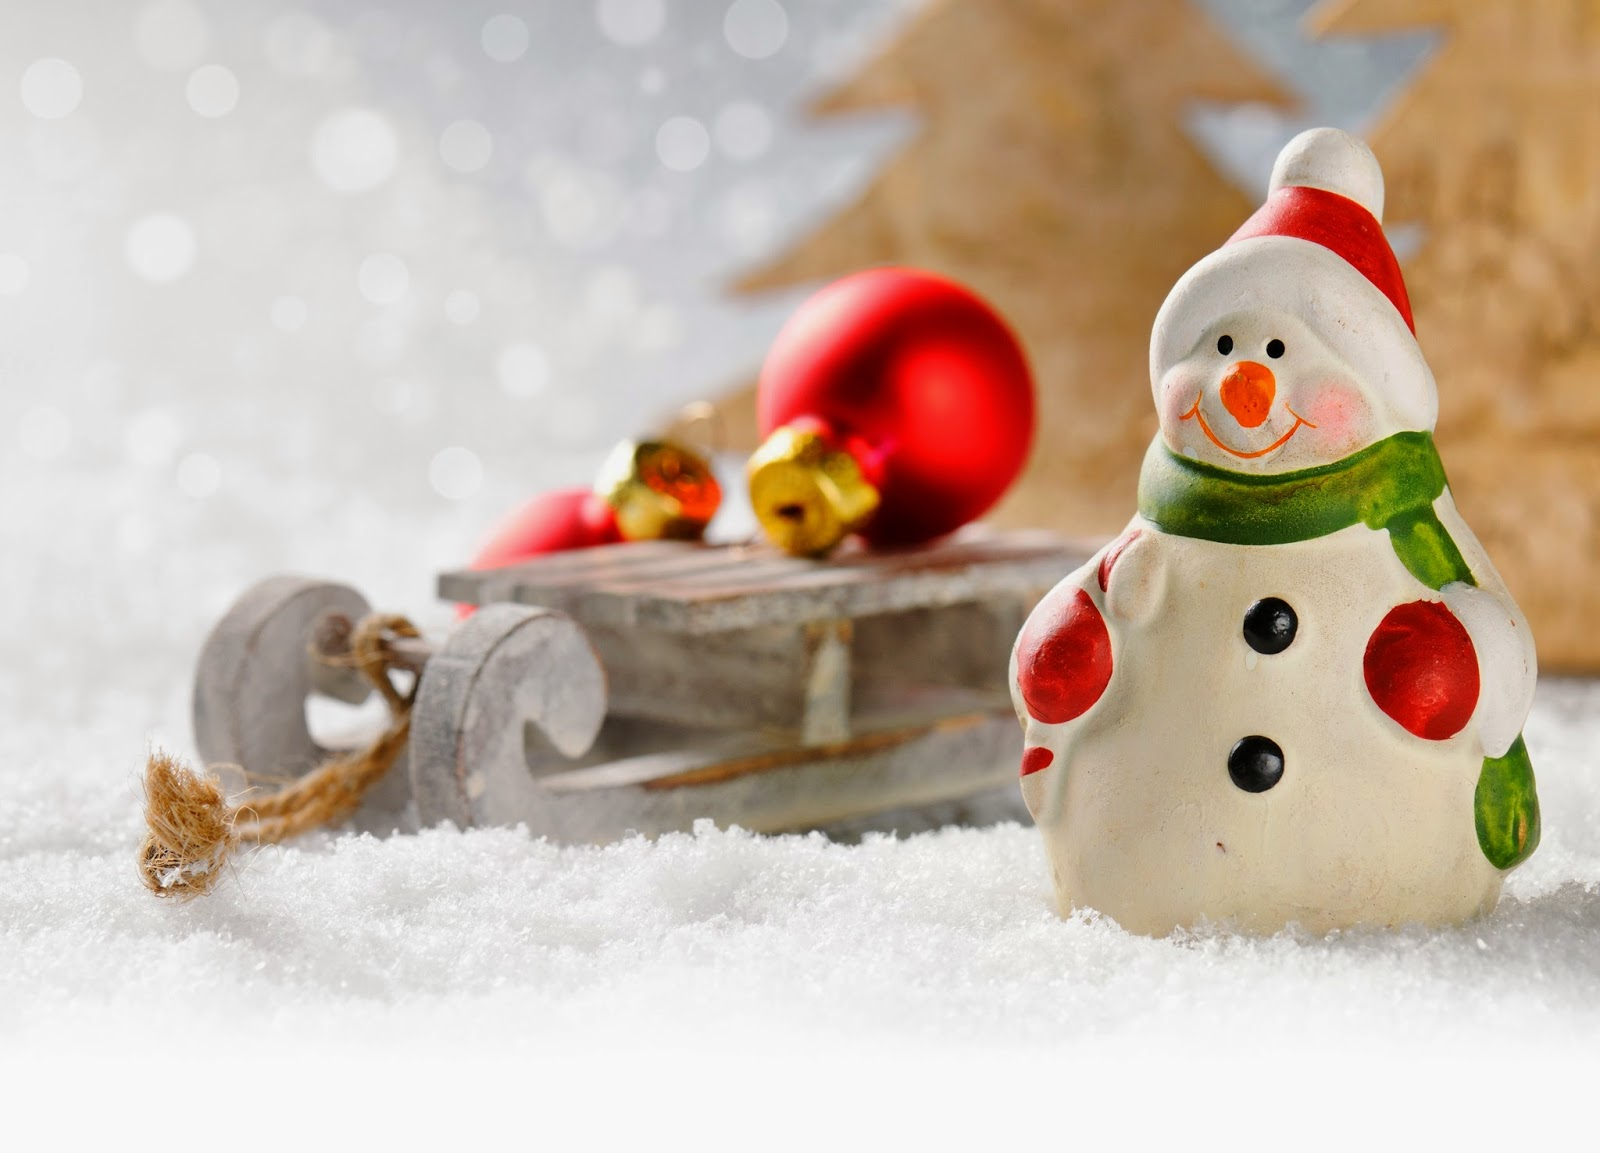 Christmas-snowman-dolls-cute-and-little-toys-beautiful-gallery-collection-photos.jpg